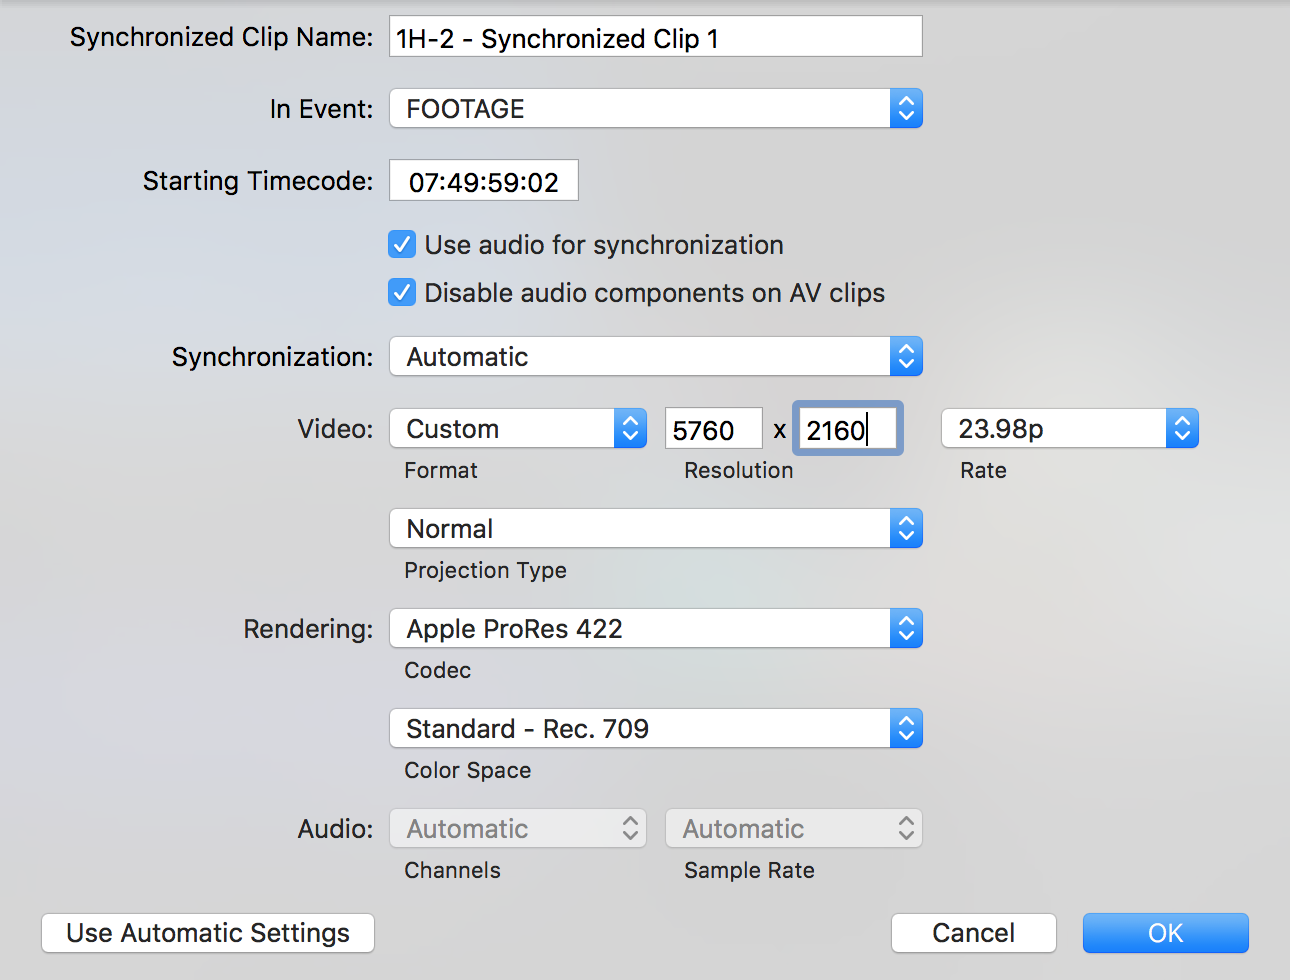 The tedious process of manually syncing, which I hope to never repeat (always jam time-code!)